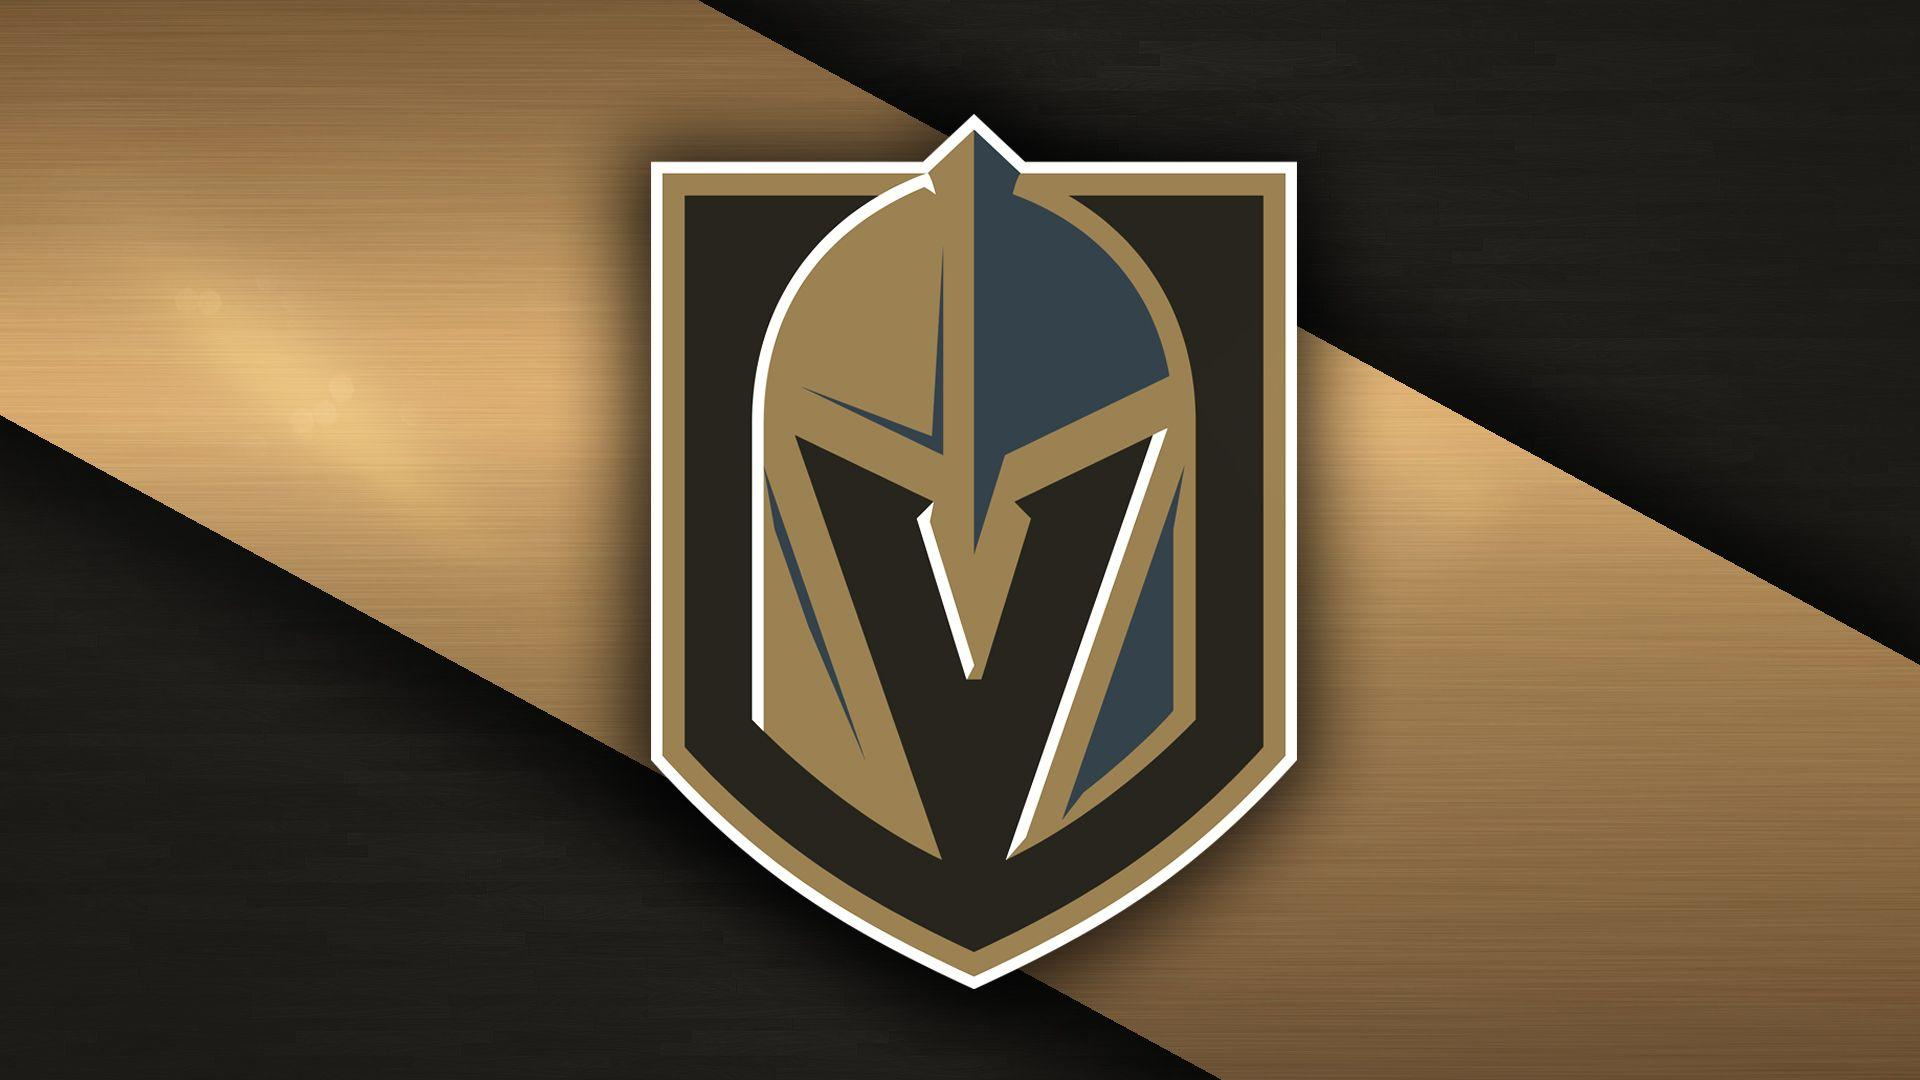 Vegas Golden Knights Wallpaper - Album on Imgur